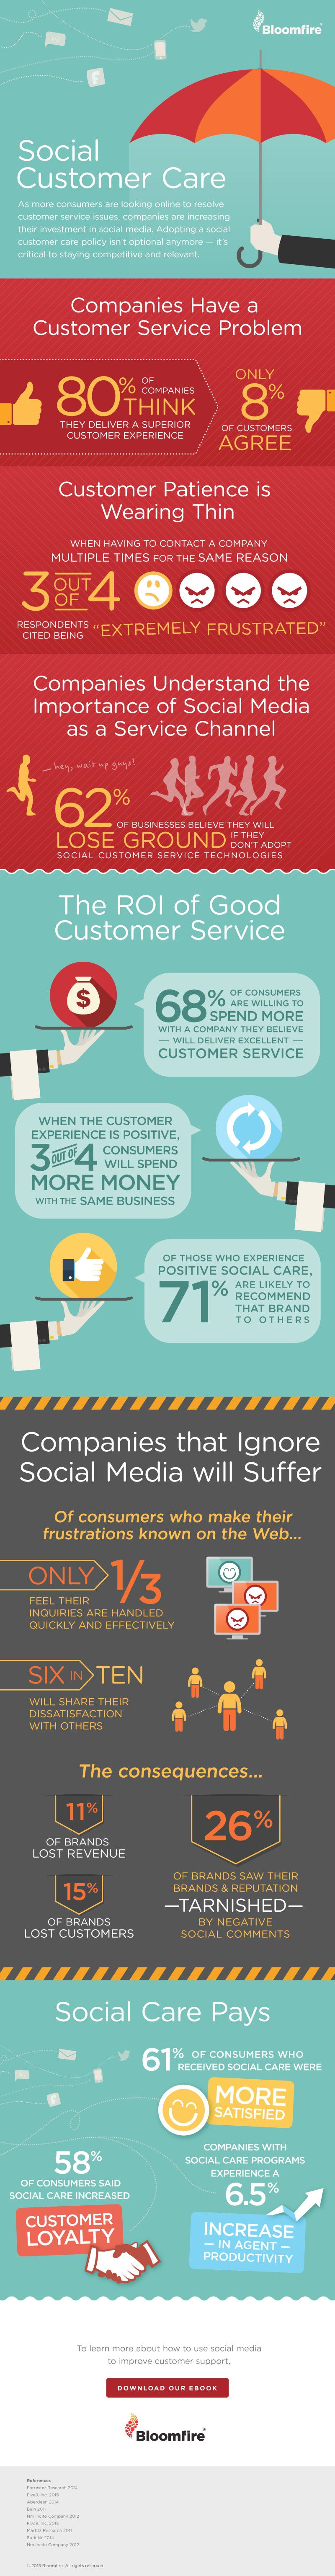 Social Customer Care #infographic